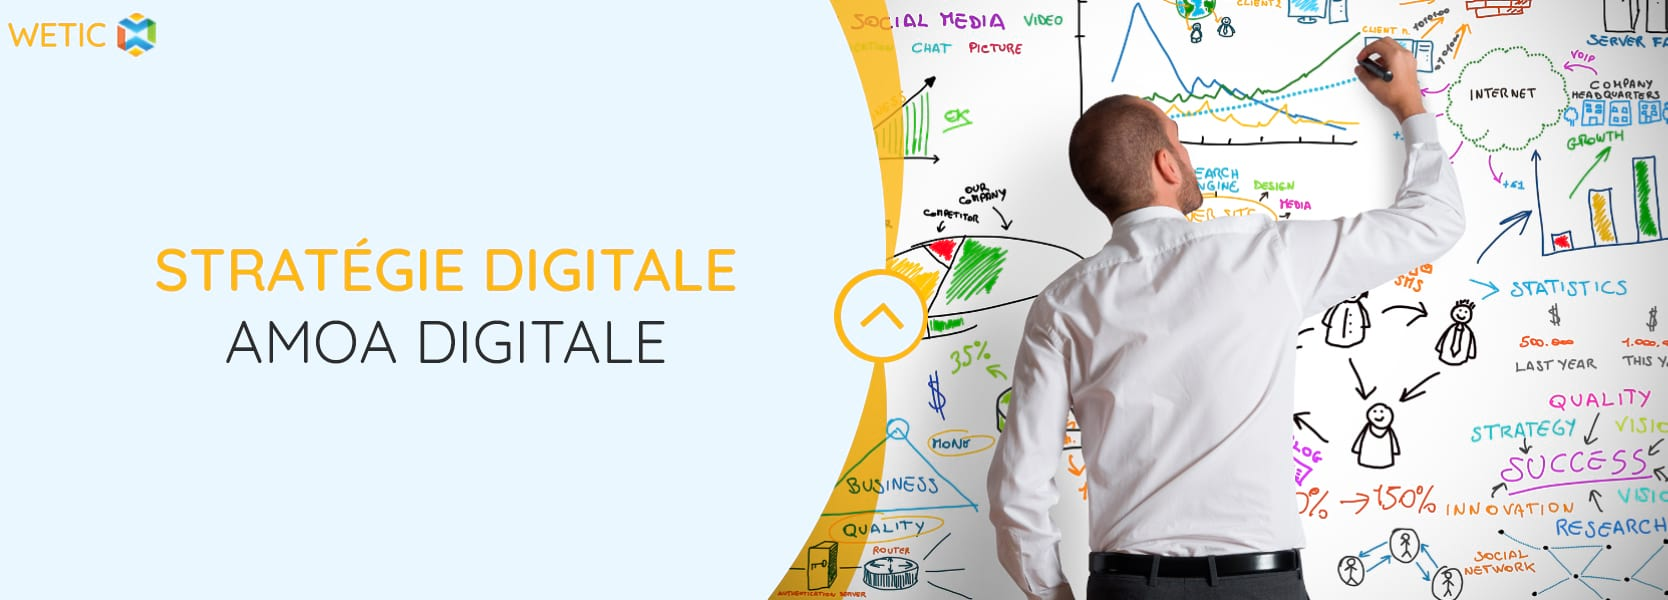 Stratégie digitale – amoa digitale